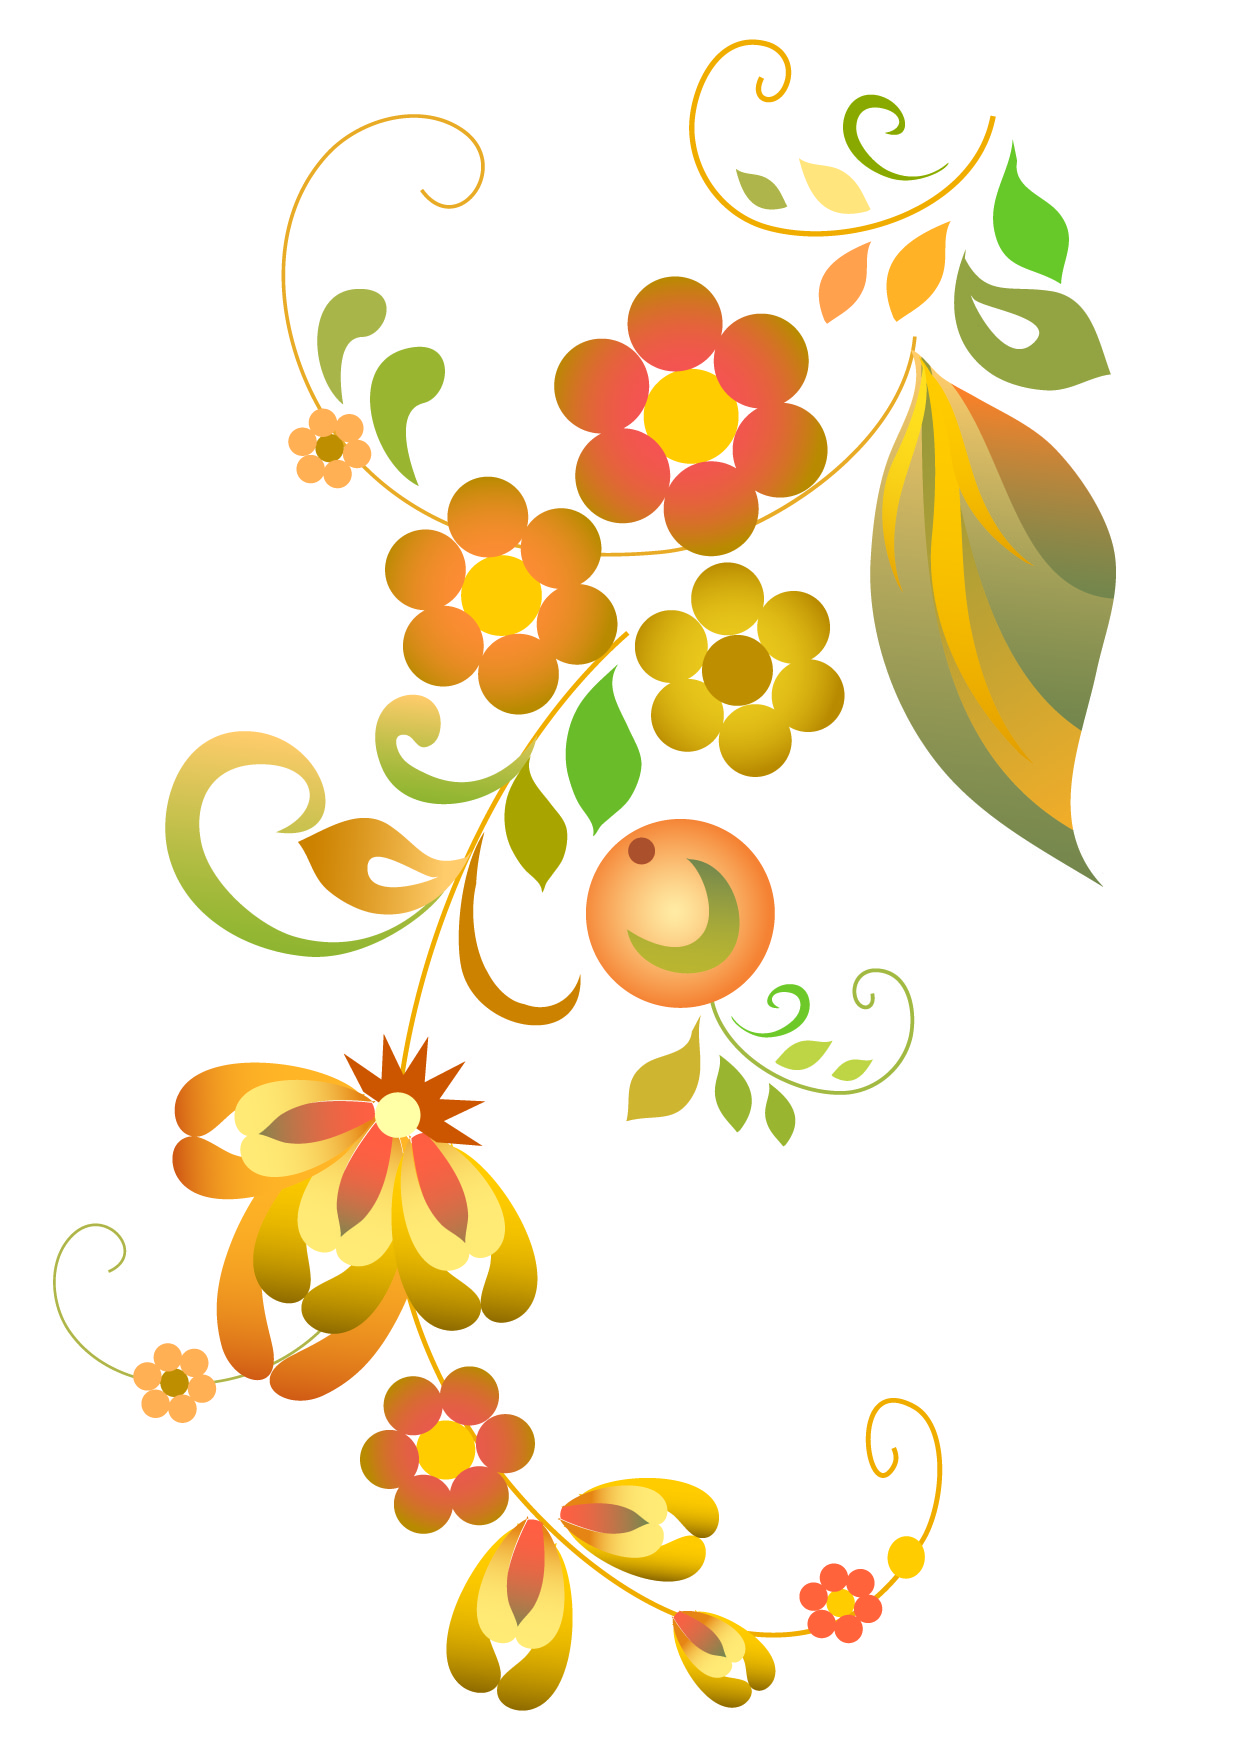 Free Free Flower Vectors, Download Free Clip Art, Free Clip